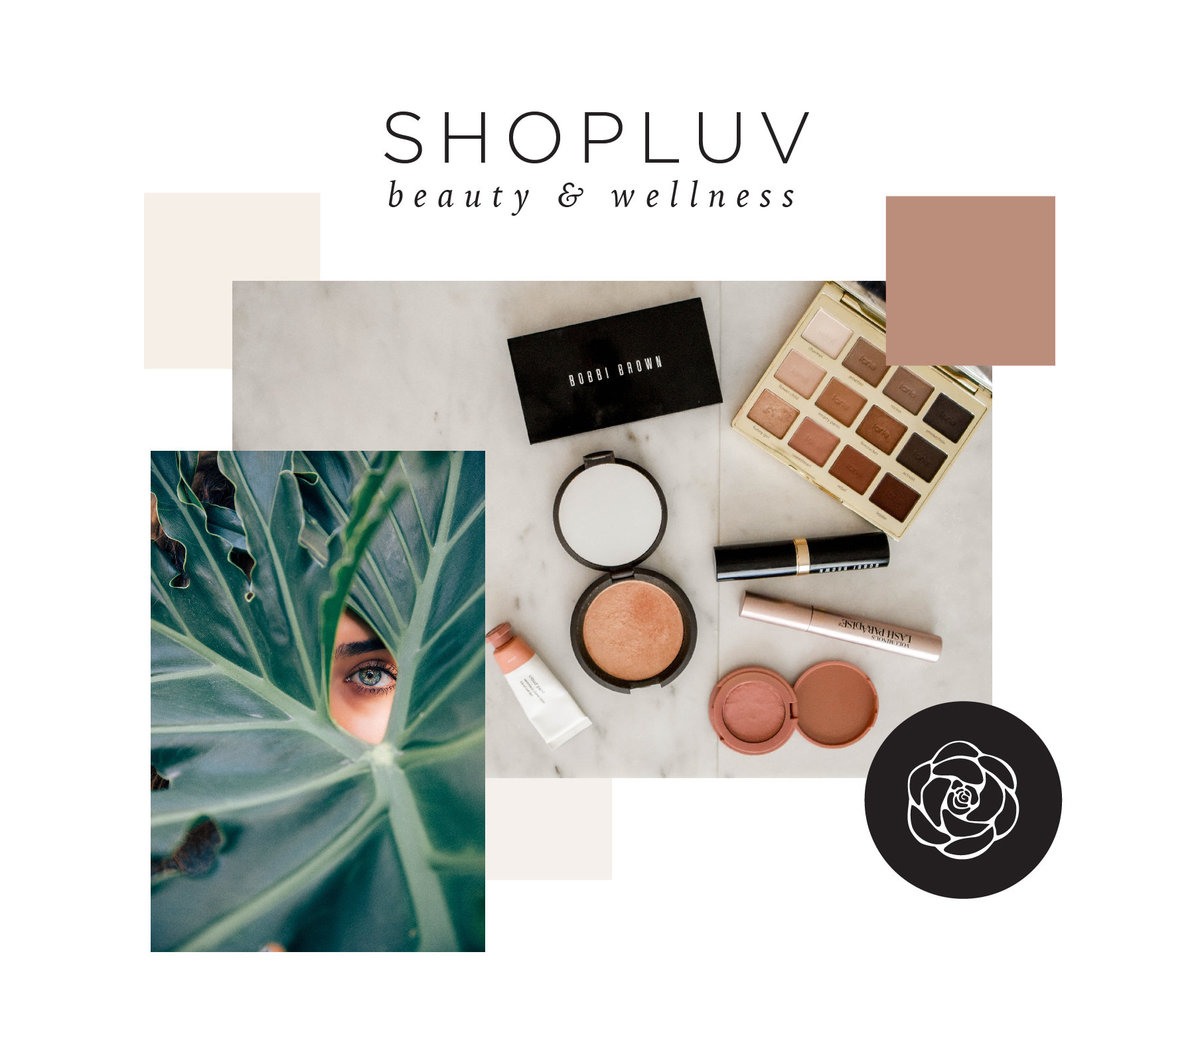 New-Moodboards-Shop-Luv-28